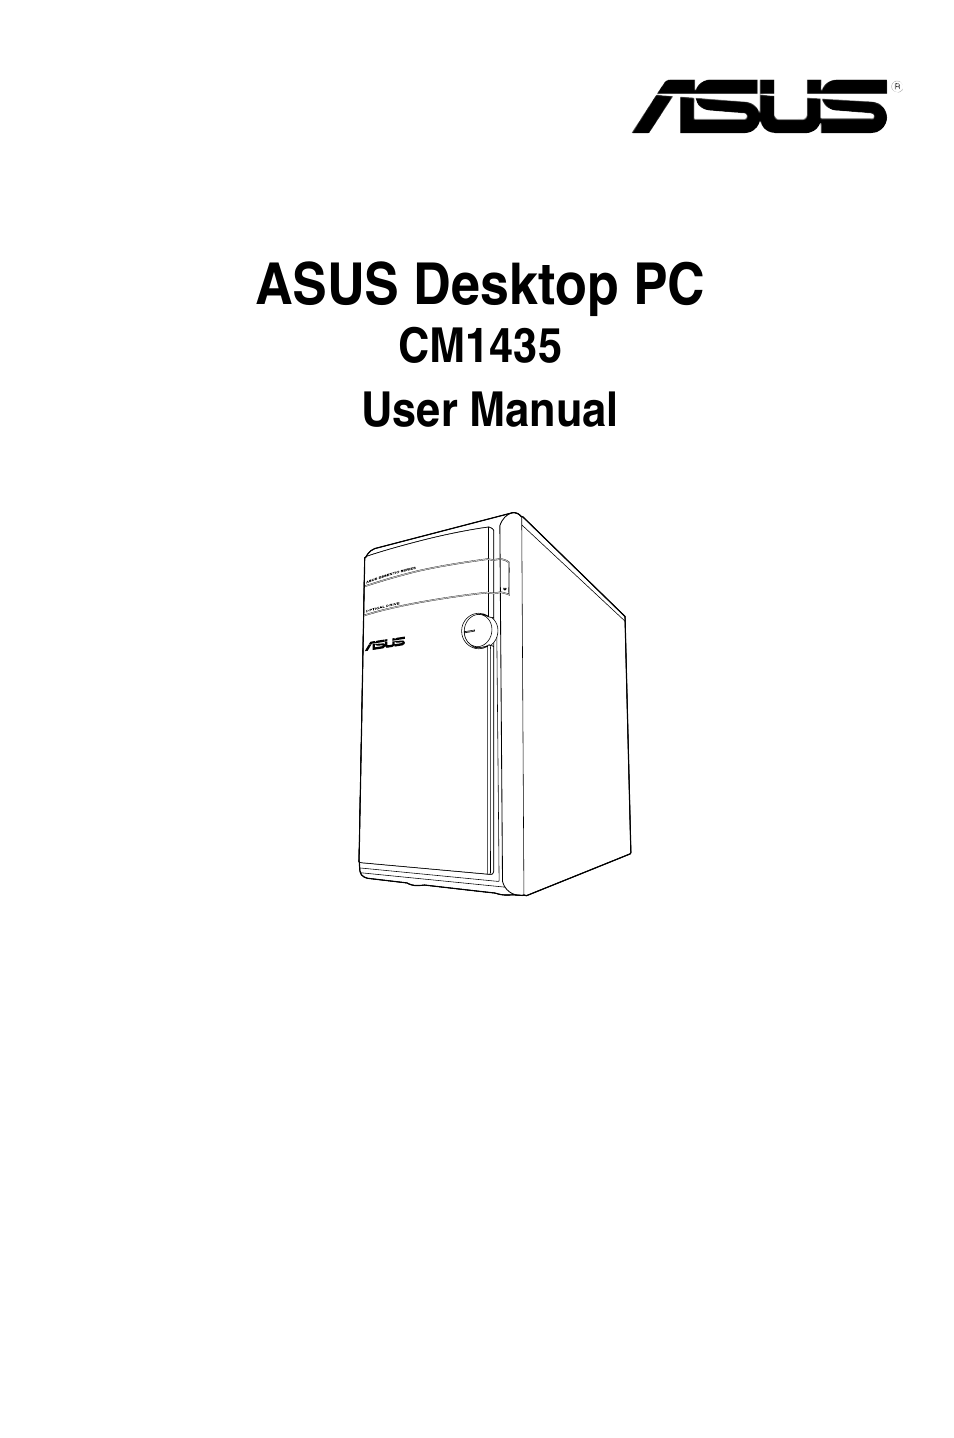 Asus Desktop Diagram Detailed Schematics A3f Laptop Block Cm1435 User Manual 68 Pages Desktops Cube